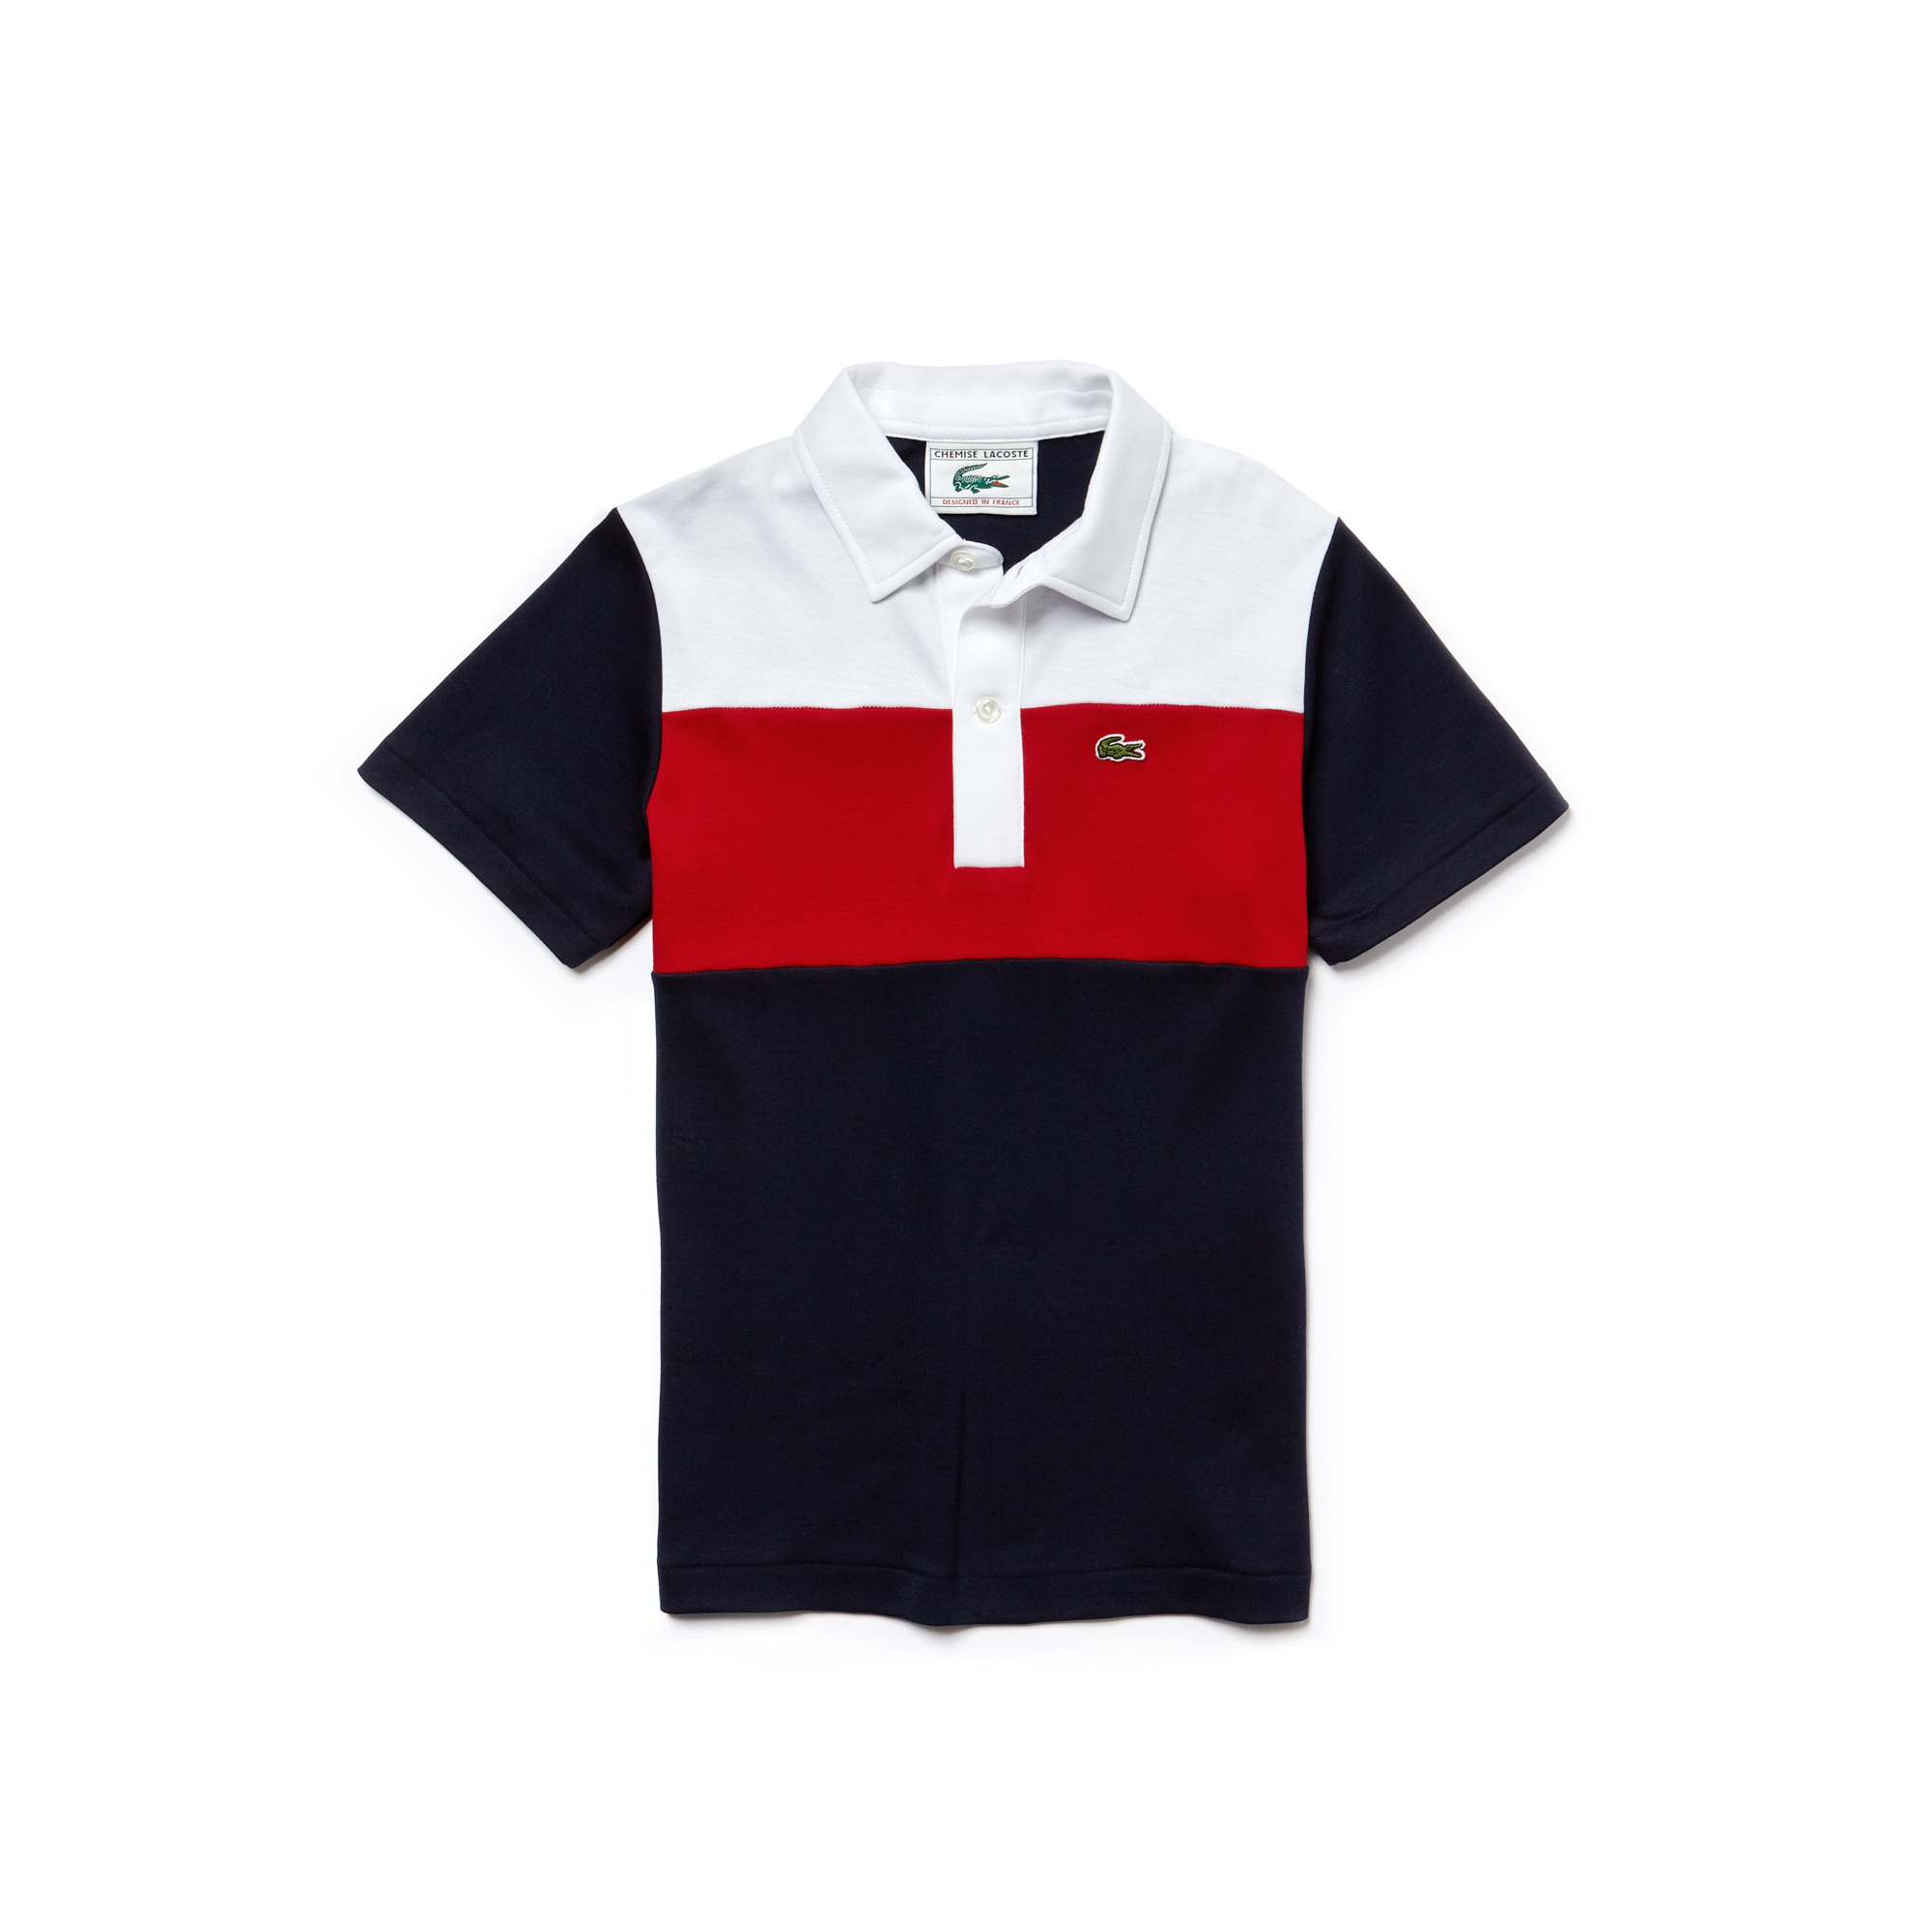 Lacoste polo van interlock, limited edition 85-jarig jubileum